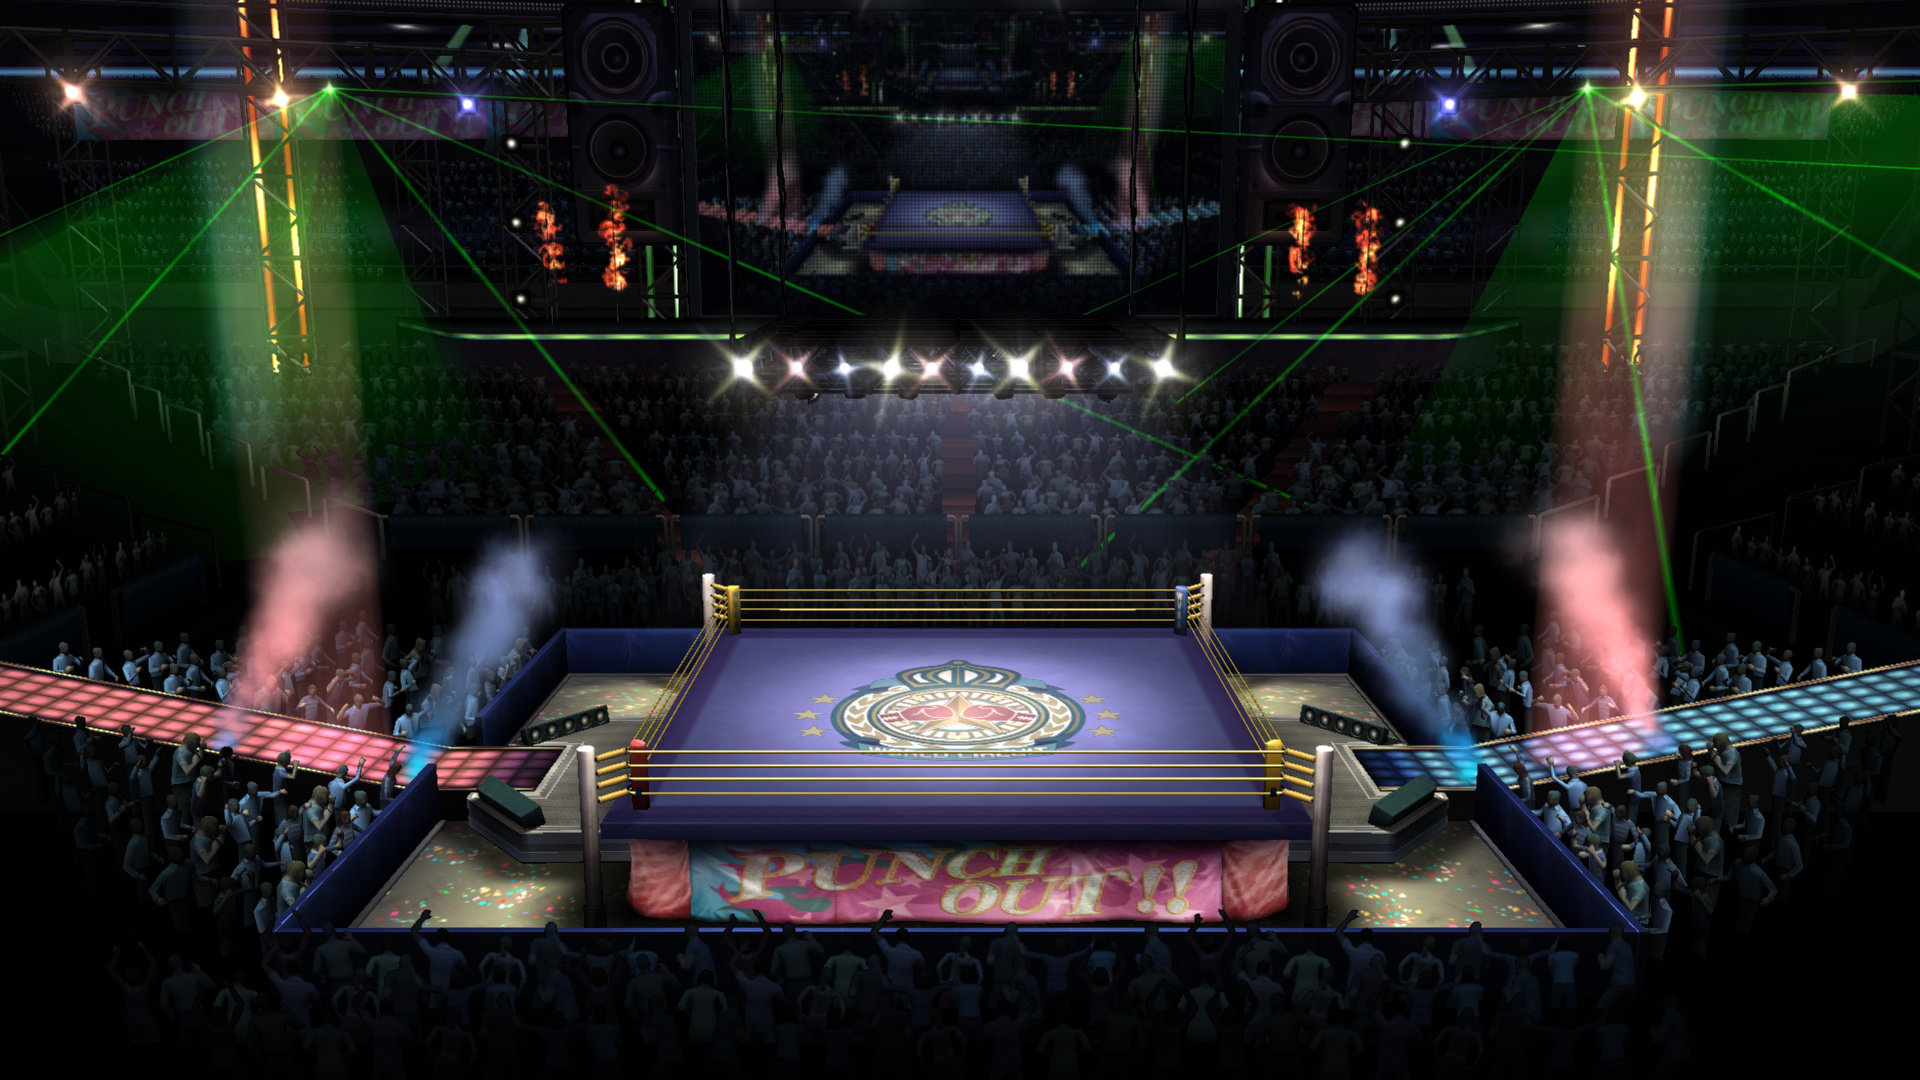 Boxing Ring Nintendo Fandom Powered By Wikia Odst Mario Kart Wii Fallout 3 Super Galaxy Paper Punch Out U Version Series Smash Bros